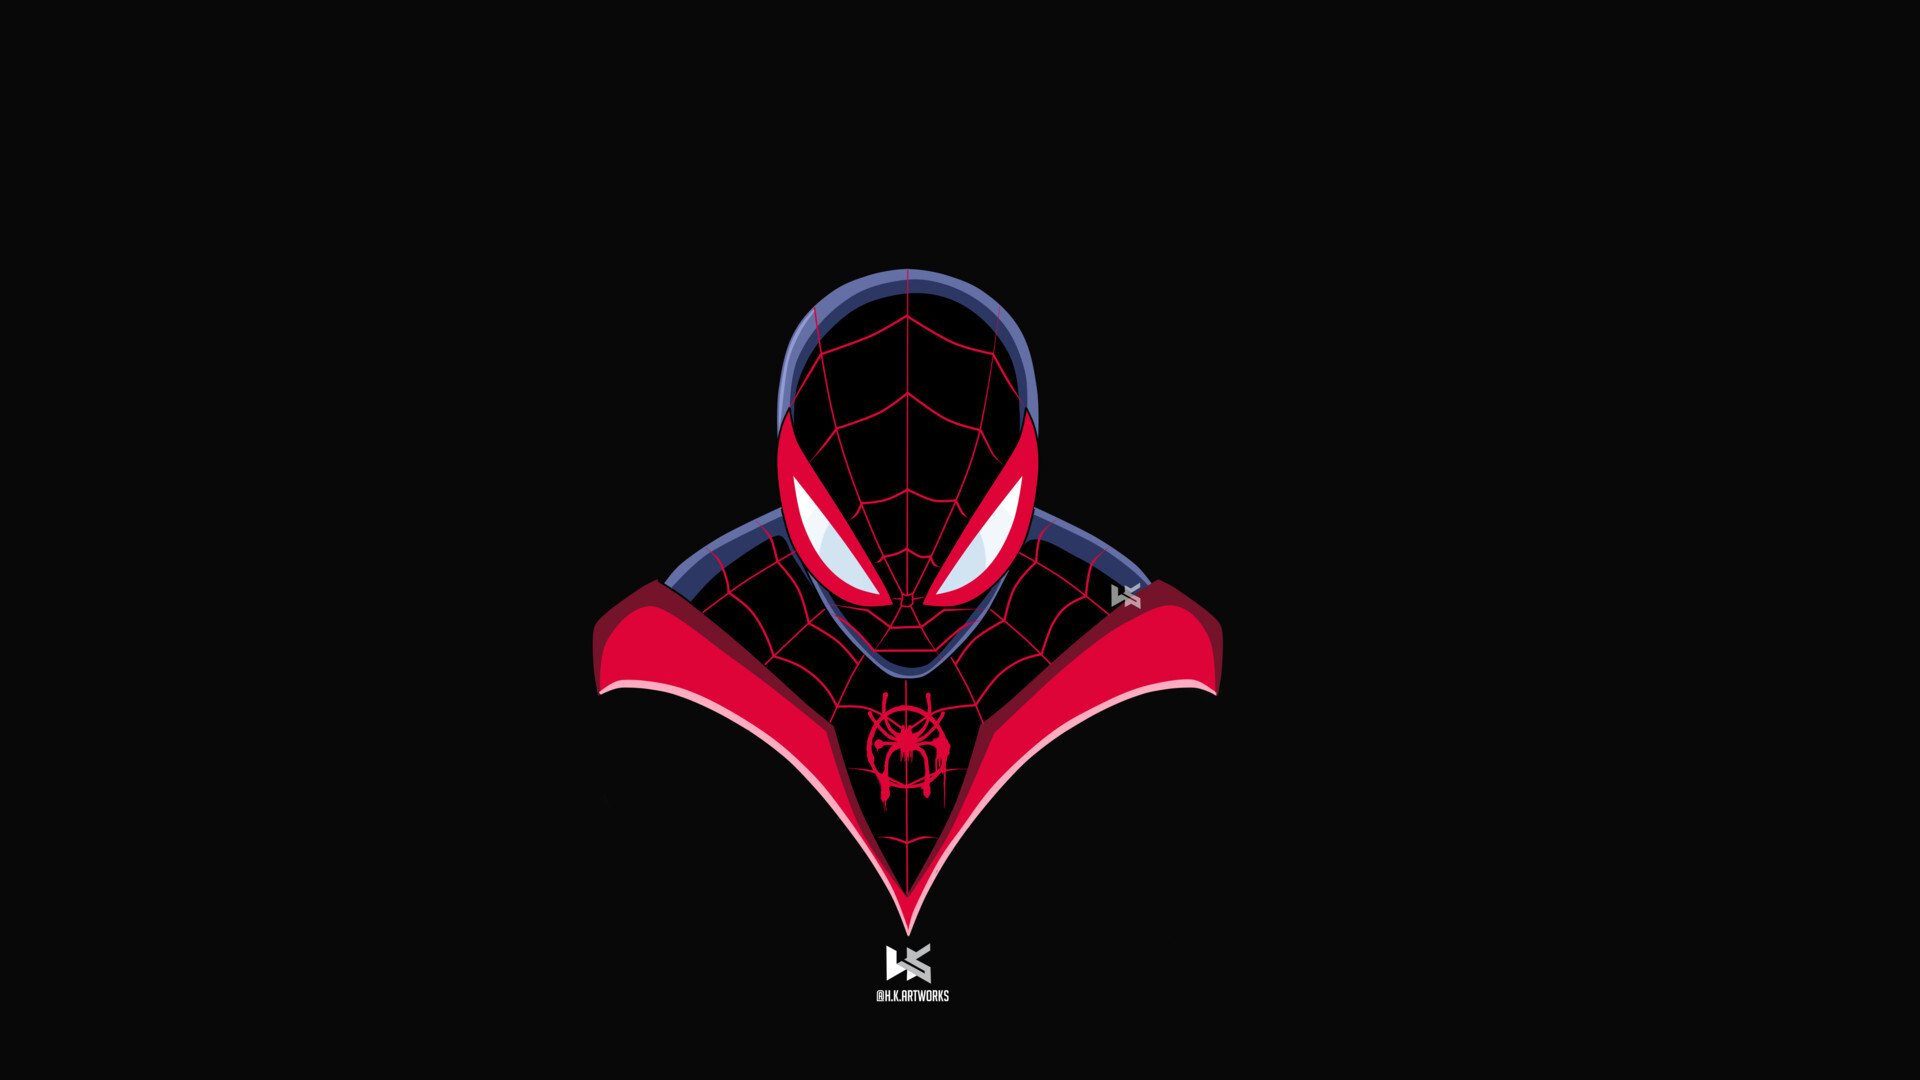 Spider Man 2099 Wallpaper 1080p: 1920x1080 Spiderman Miles Morales Art Laptop Full HD 1080P